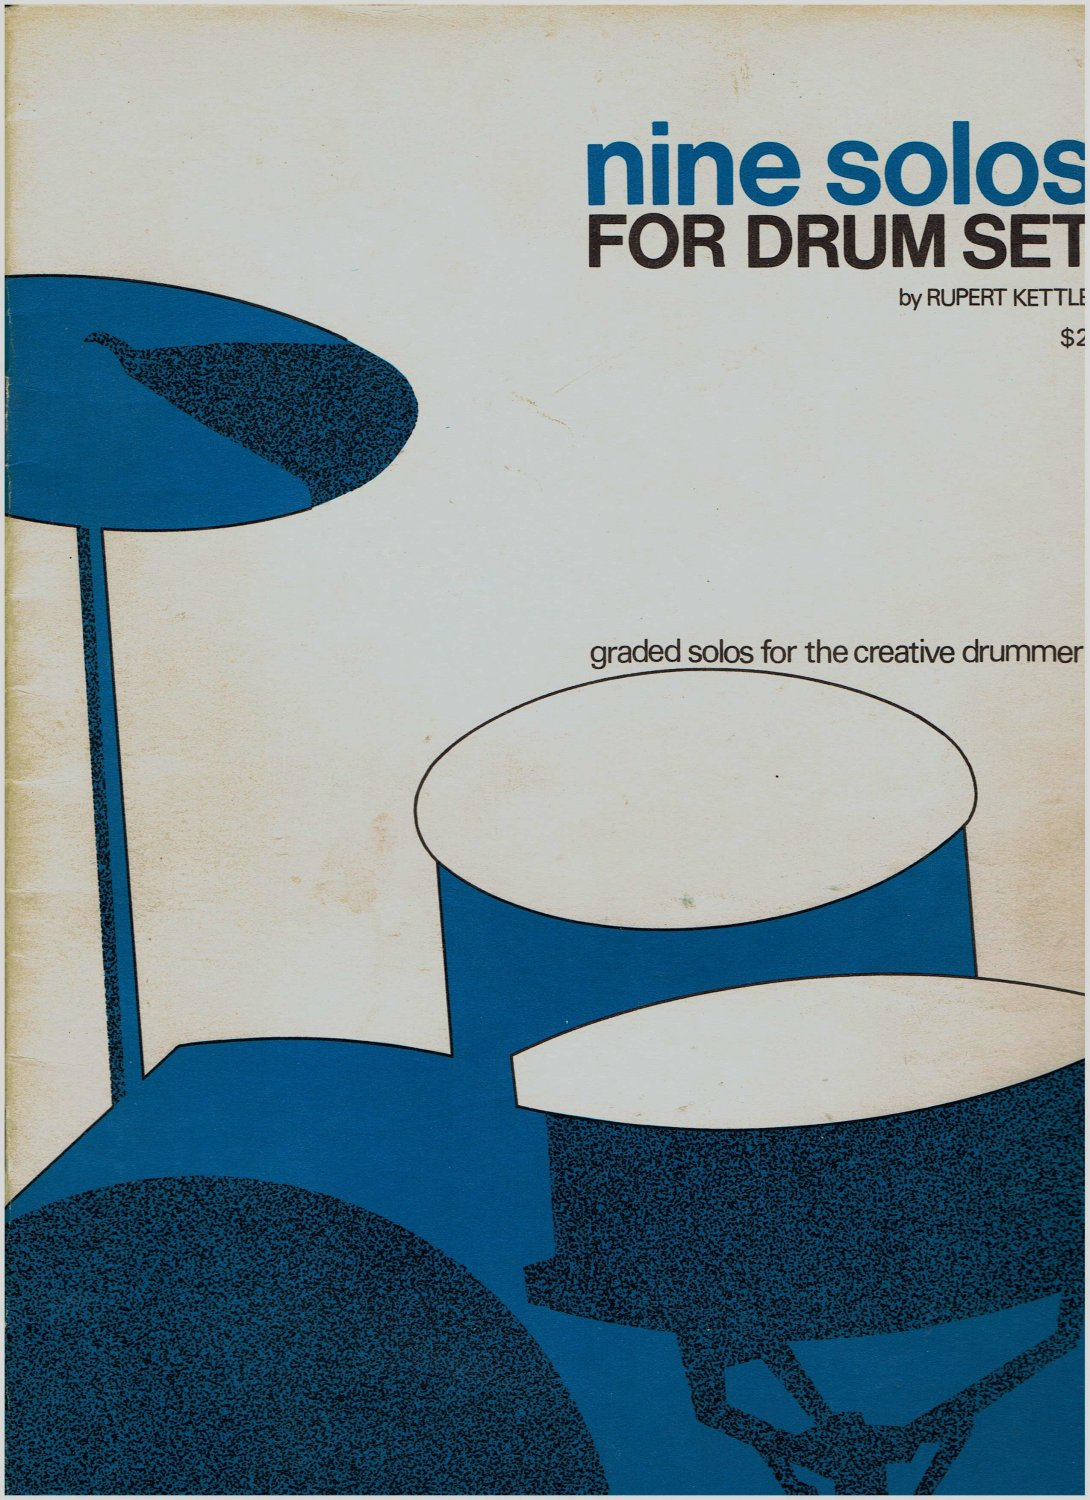 Nine Solos For Drum Set  by Rupert Kettle 1972